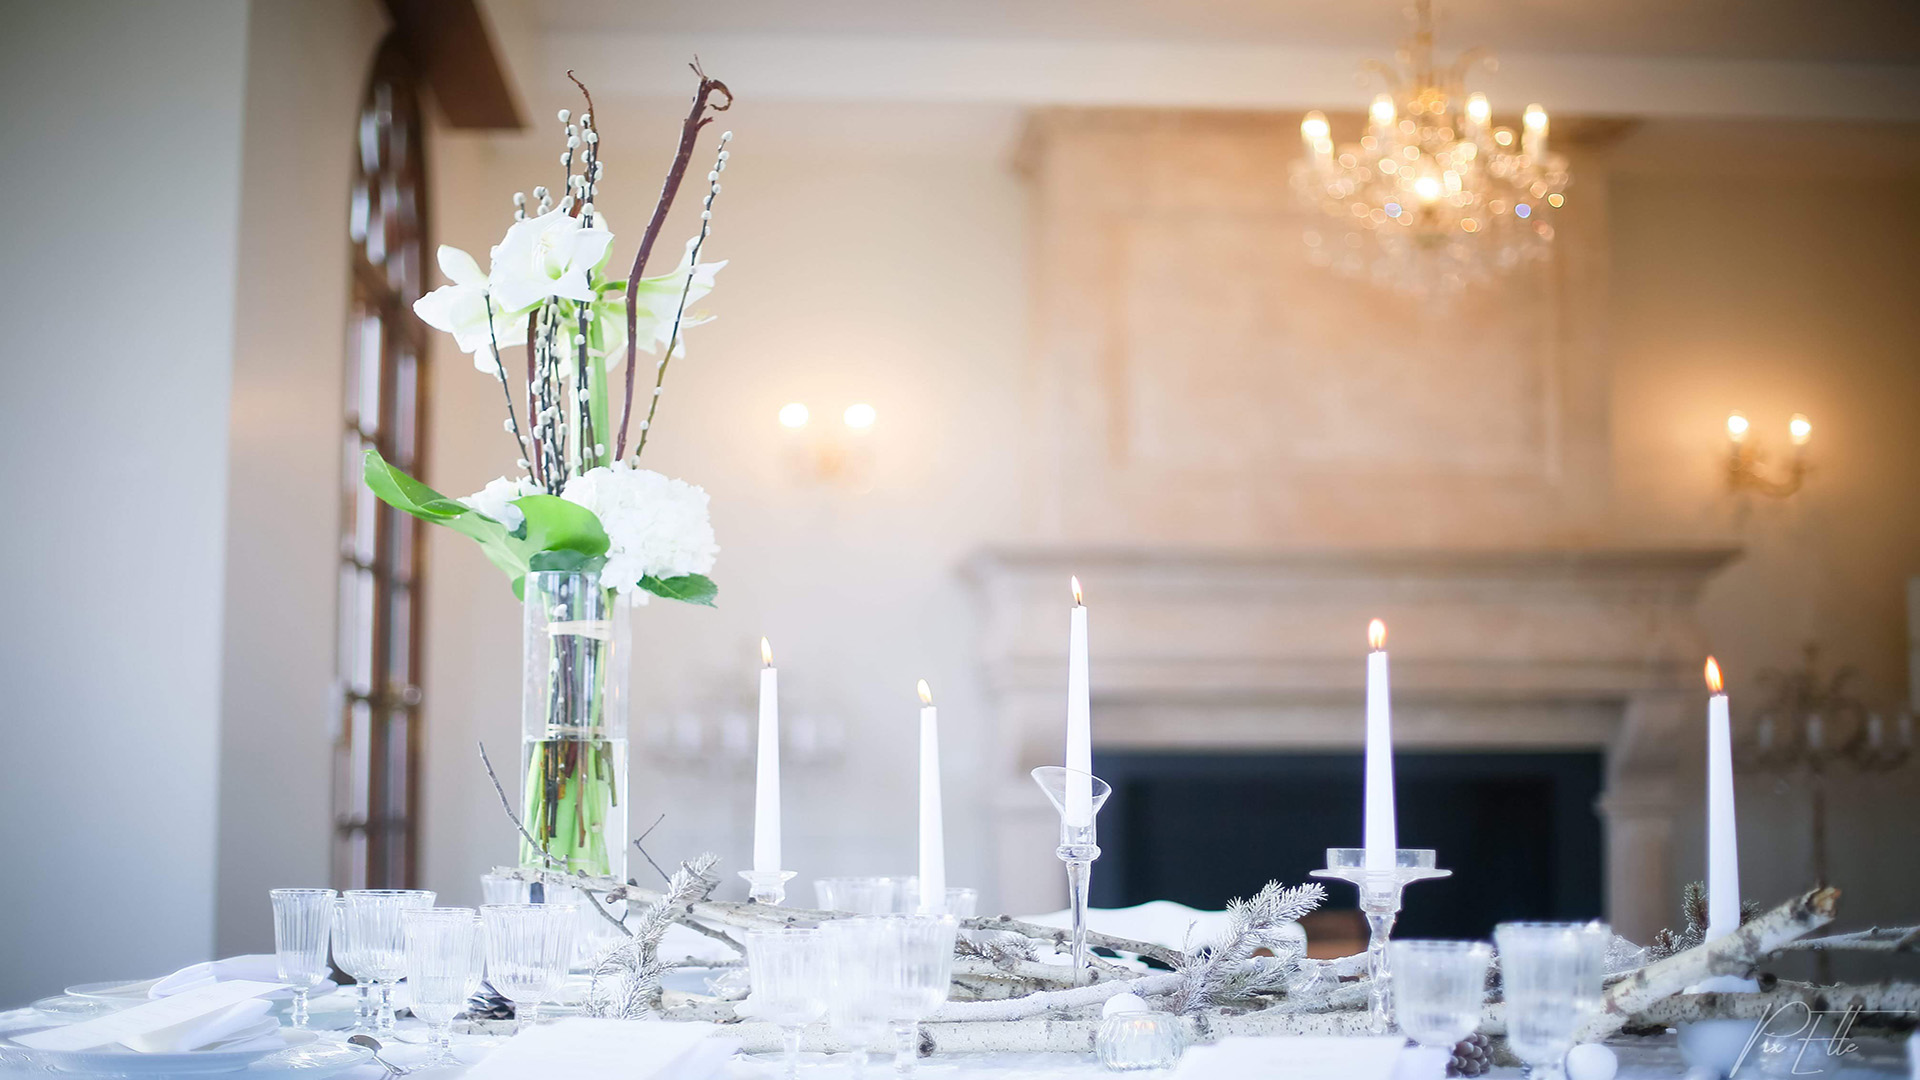 Shooting inspiration mariage hiver décoration de table - Perfect Moment by A Wedding planner Reims